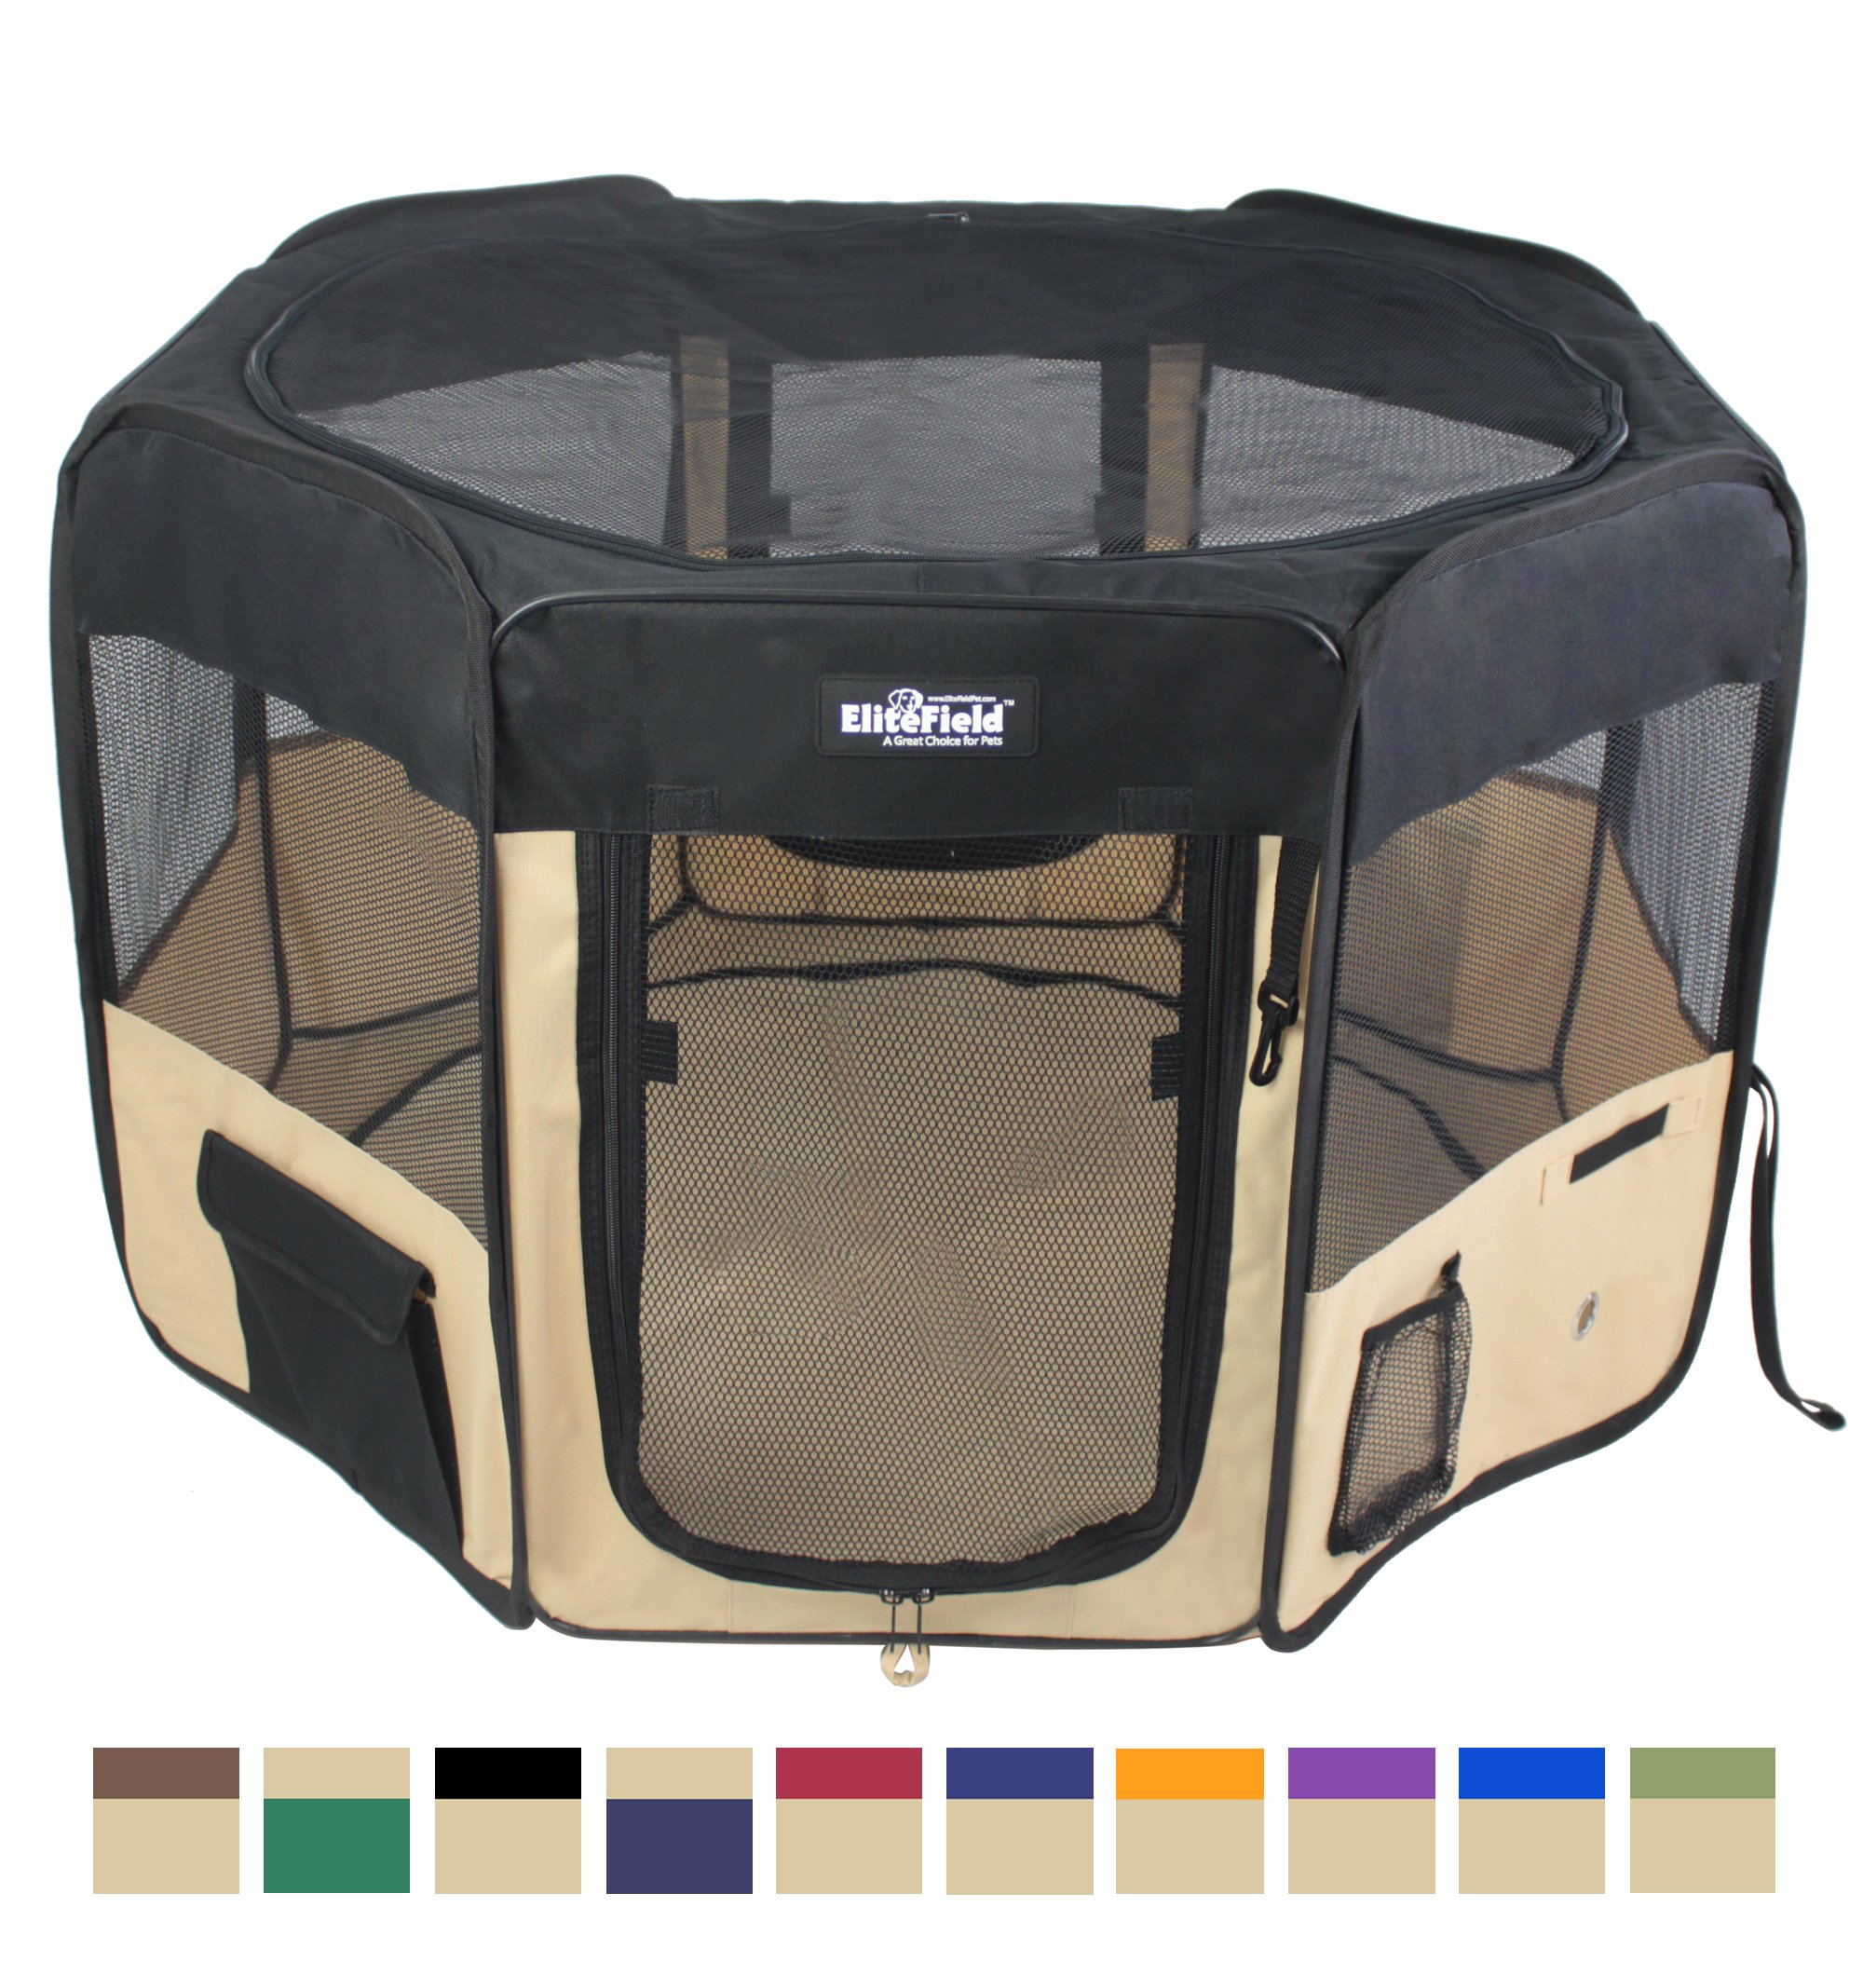 EliteField 2-Door Soft Pet Playpen, Exercise Pen, Multiple Sizes and Colors Available for Dogs, Cats and Other Pets (48'' x 48'' x 32''H, Black+Beige)